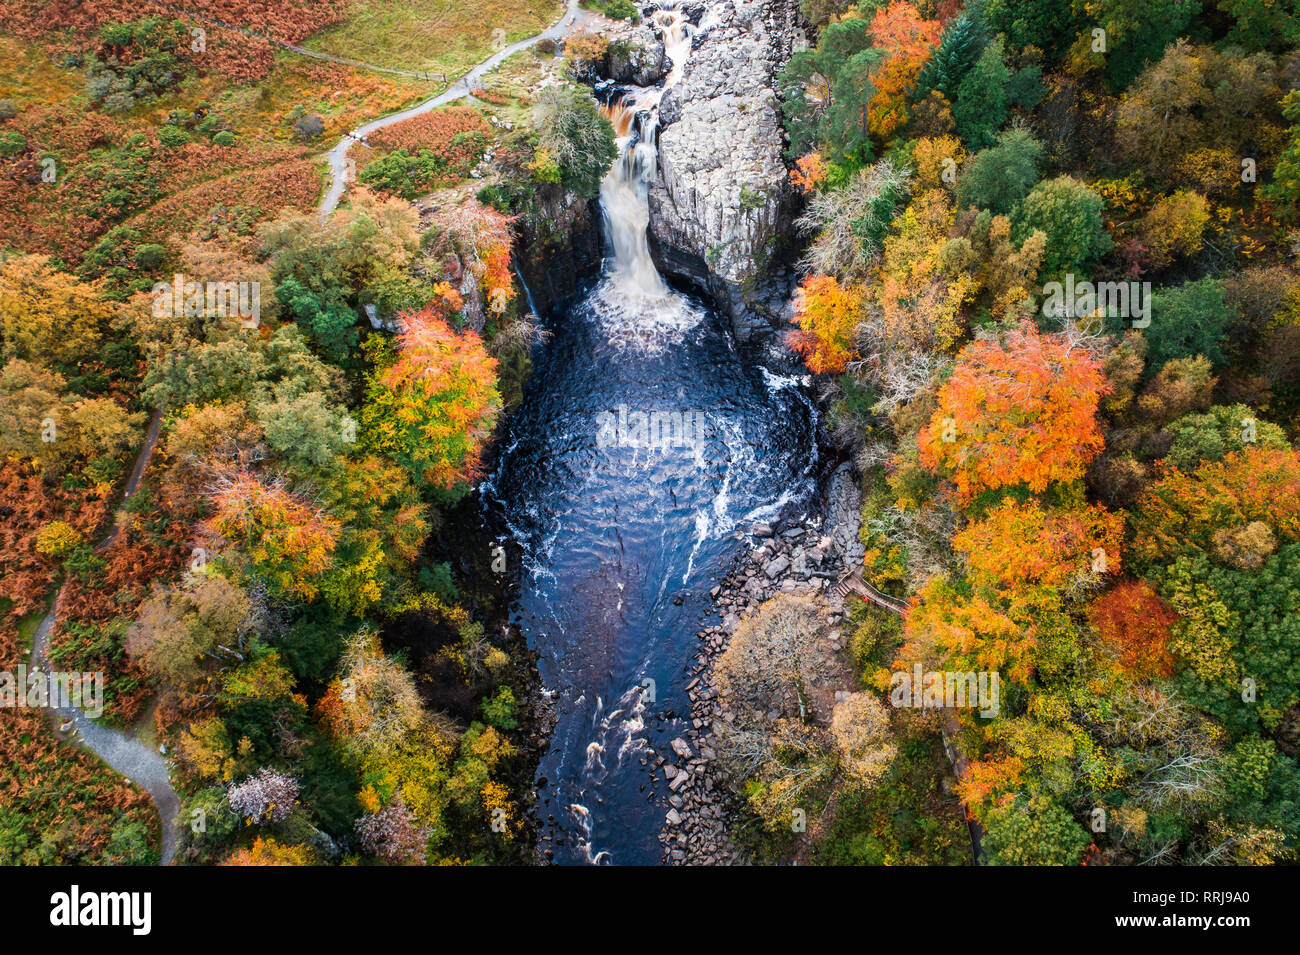 Aerial view of High Force and River Tees, North Pennines Area of Outstanding Natural Beauty, Middleton-in-Teesdale, Teesdale, Durham, England - Stock Image